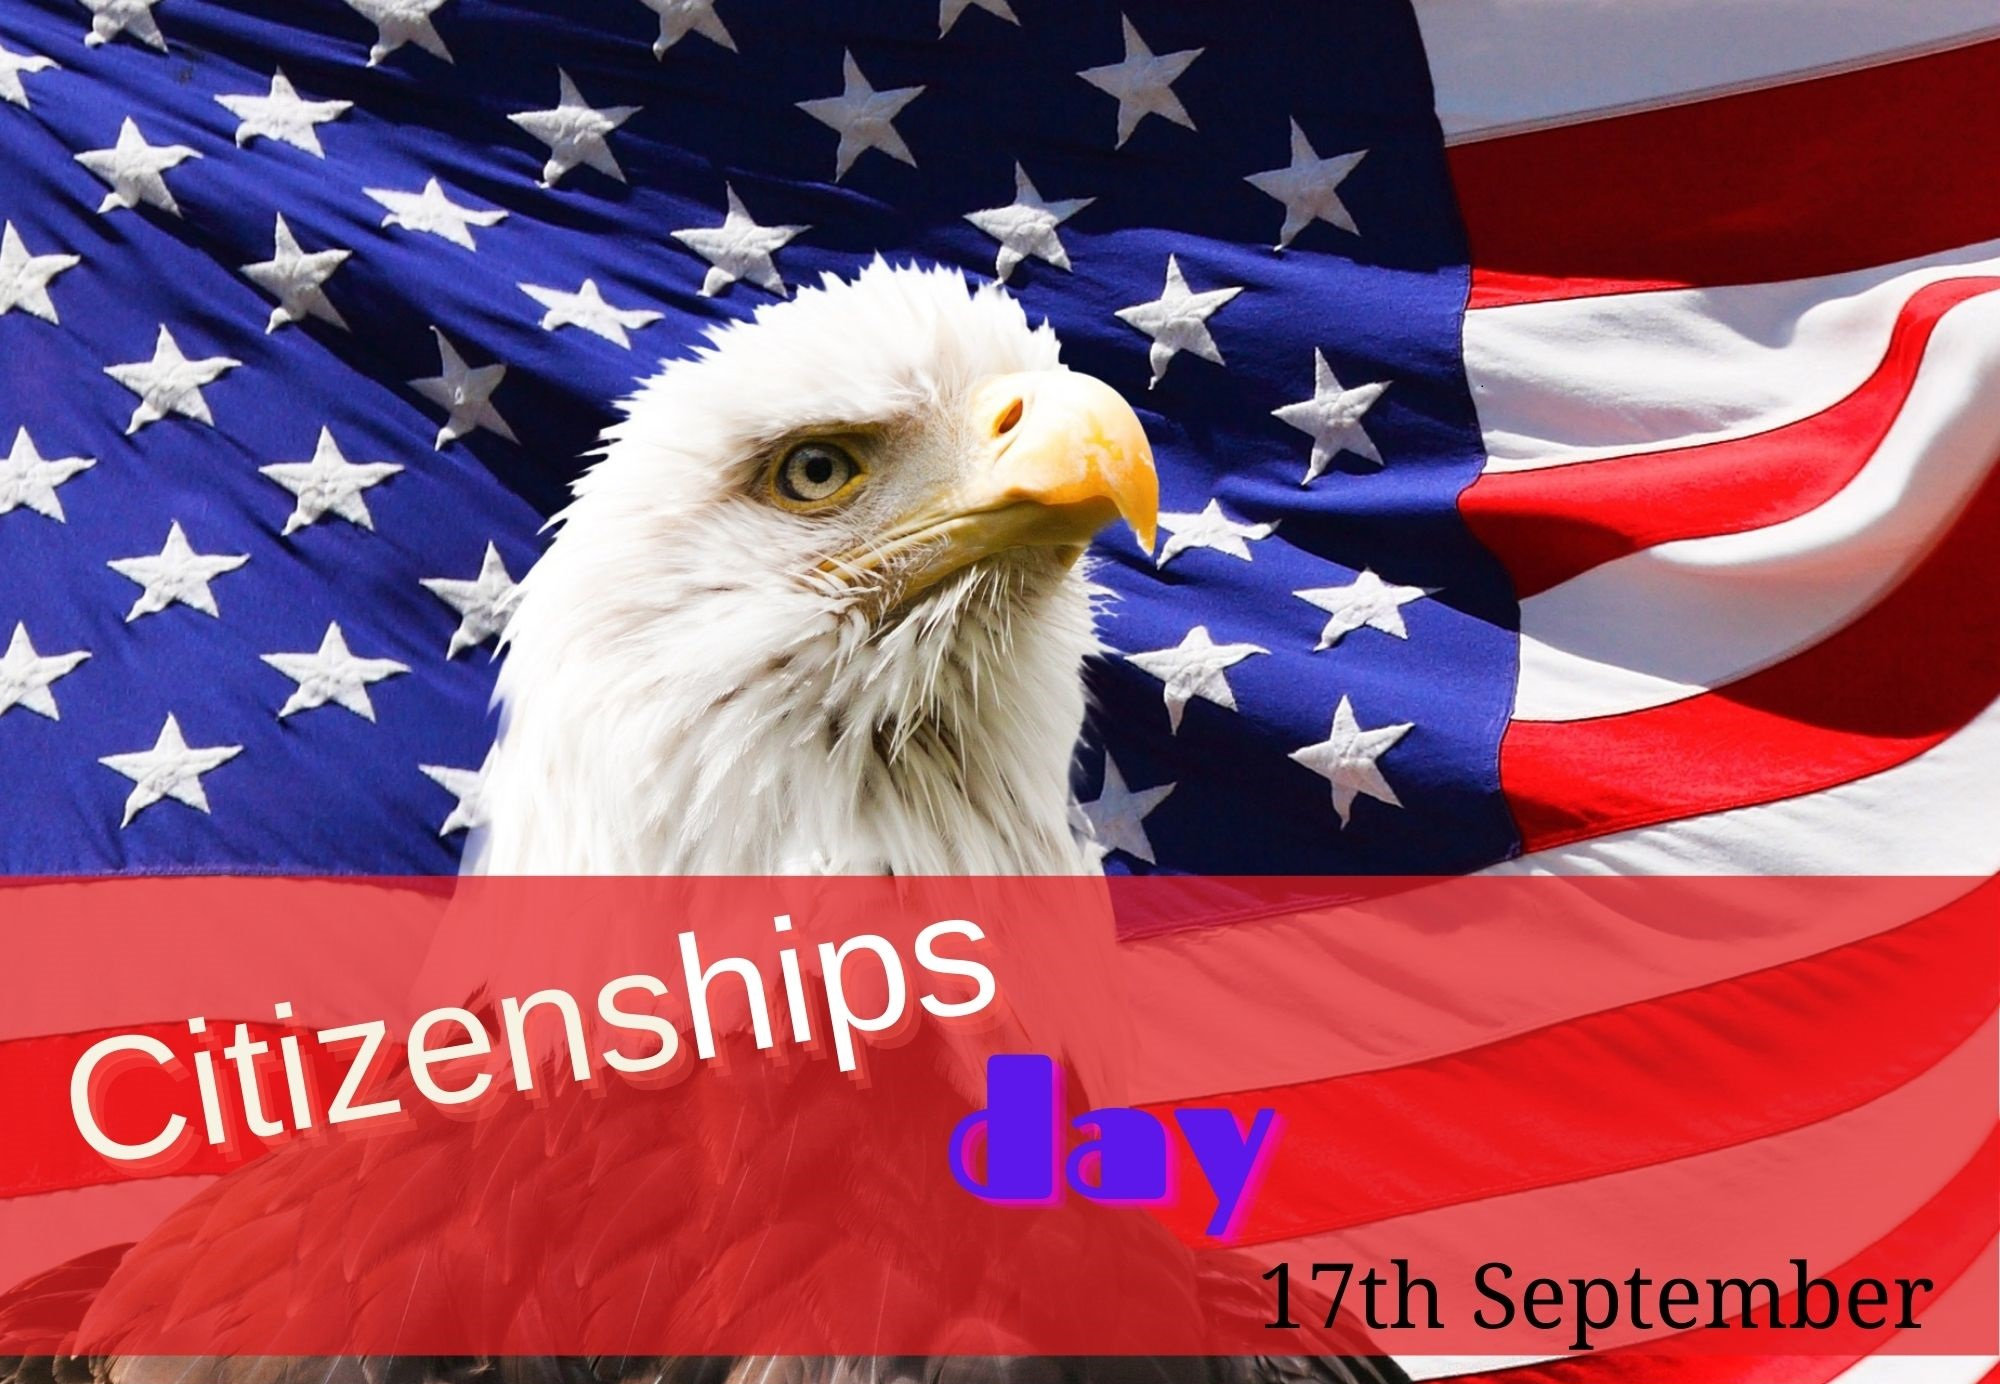 Citizenships day